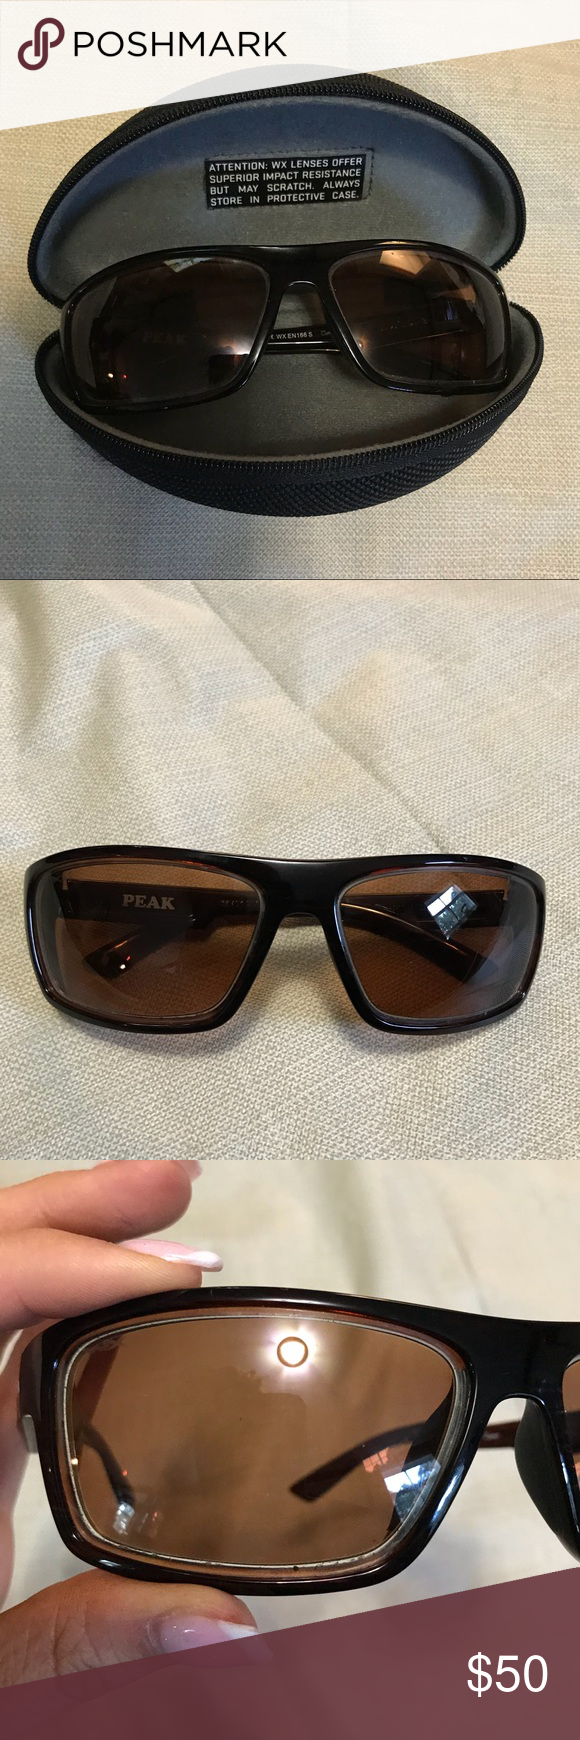 22d086b7bec Peak Polarized Amber Lens Sunglasses Wiley X WX Peak Polarized Amber Lens  Gloss Layered Tortoise Frame. In excellent condition. With original  protective ...